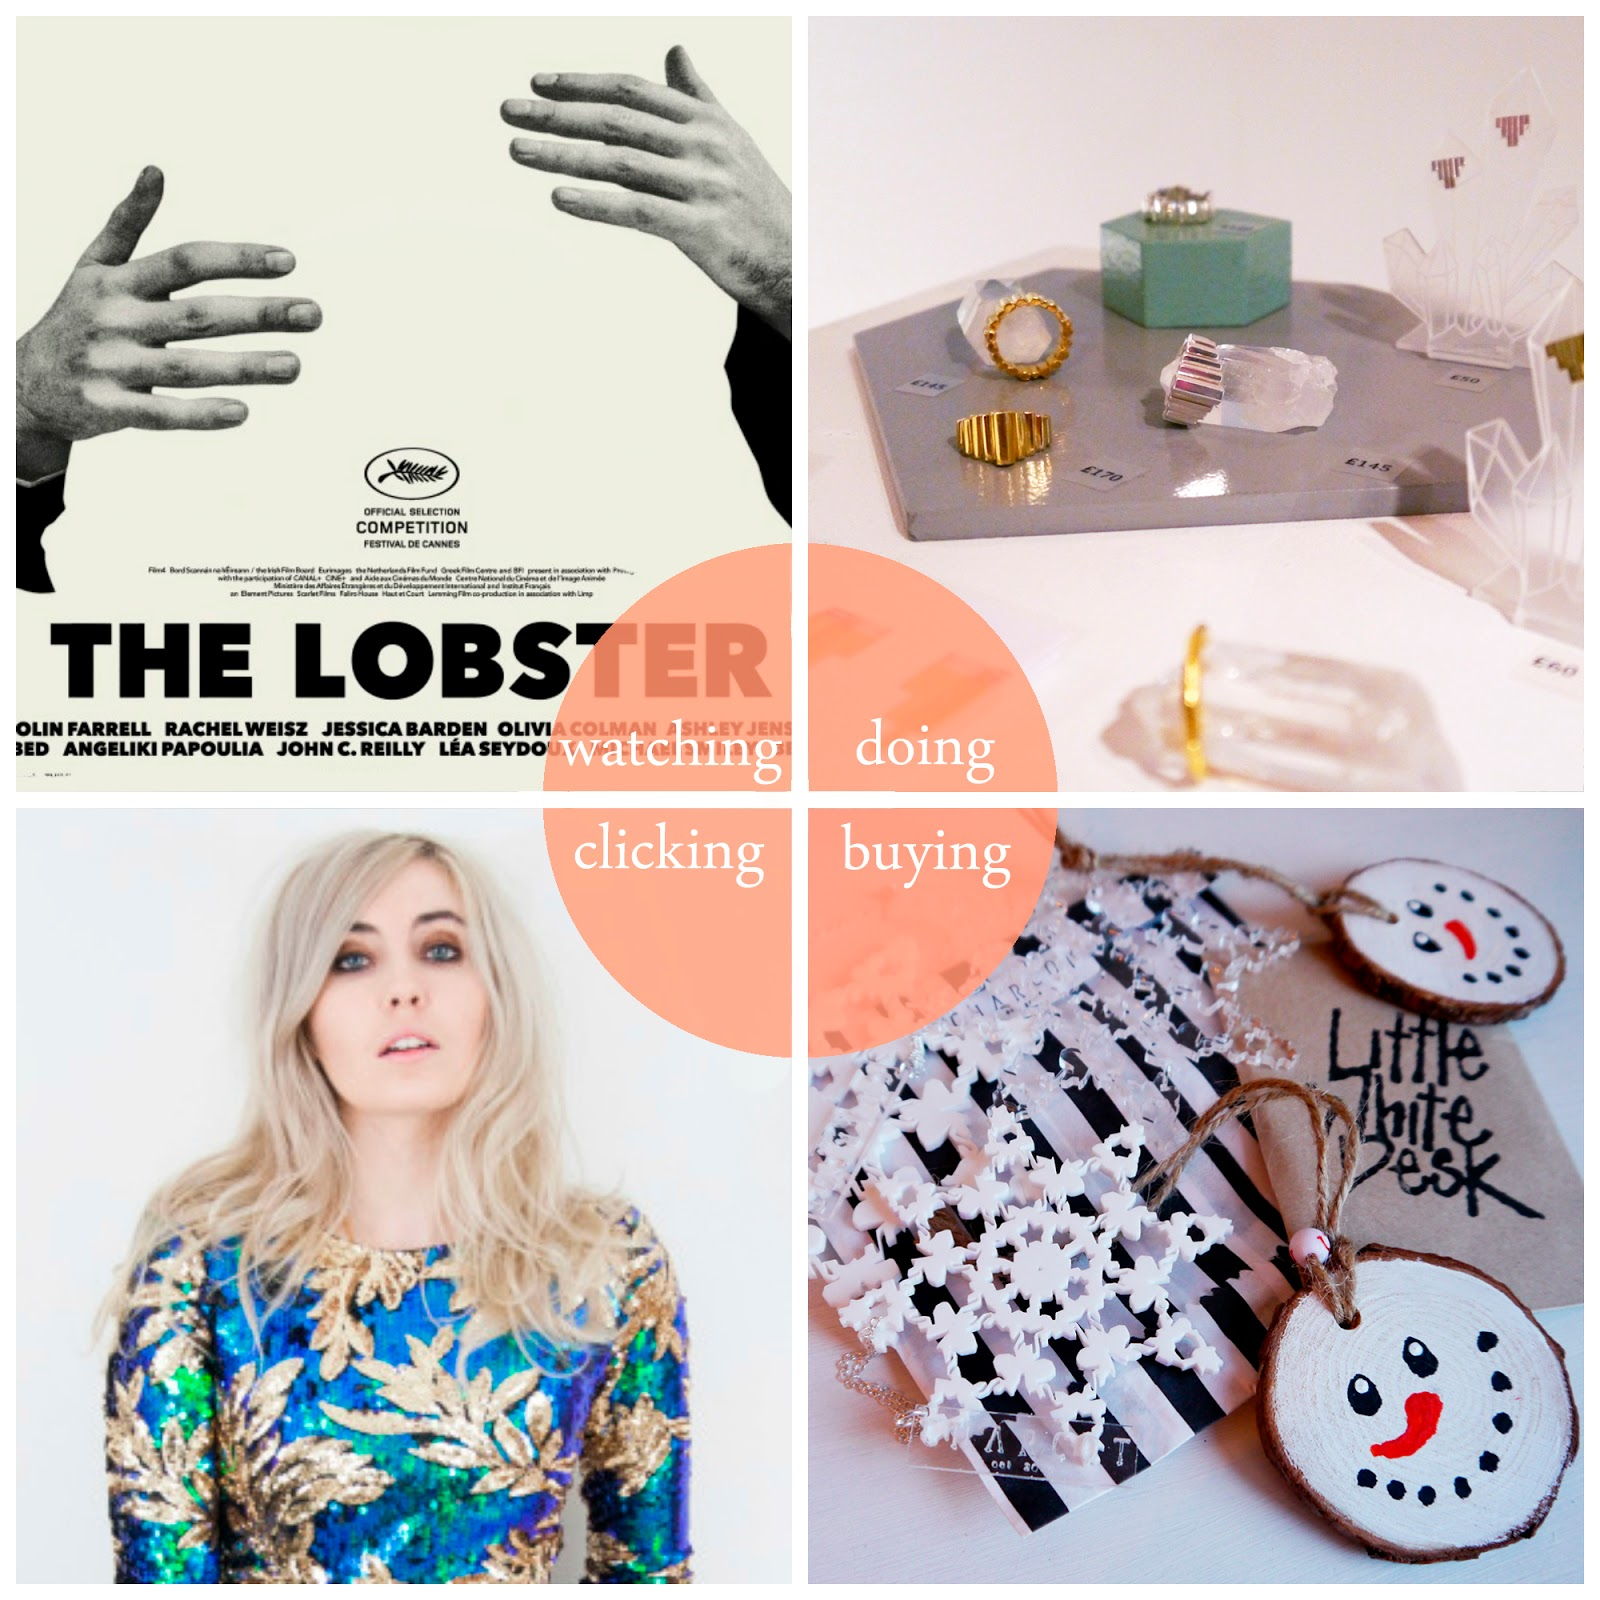 Round Up, best bits, highlights, November 2015, The Lobster, film of the month, Filipa Oliveira, jewellery, Little Lies, online shop, onlone shopping, Christmas decorations, tree decorations, Charcot